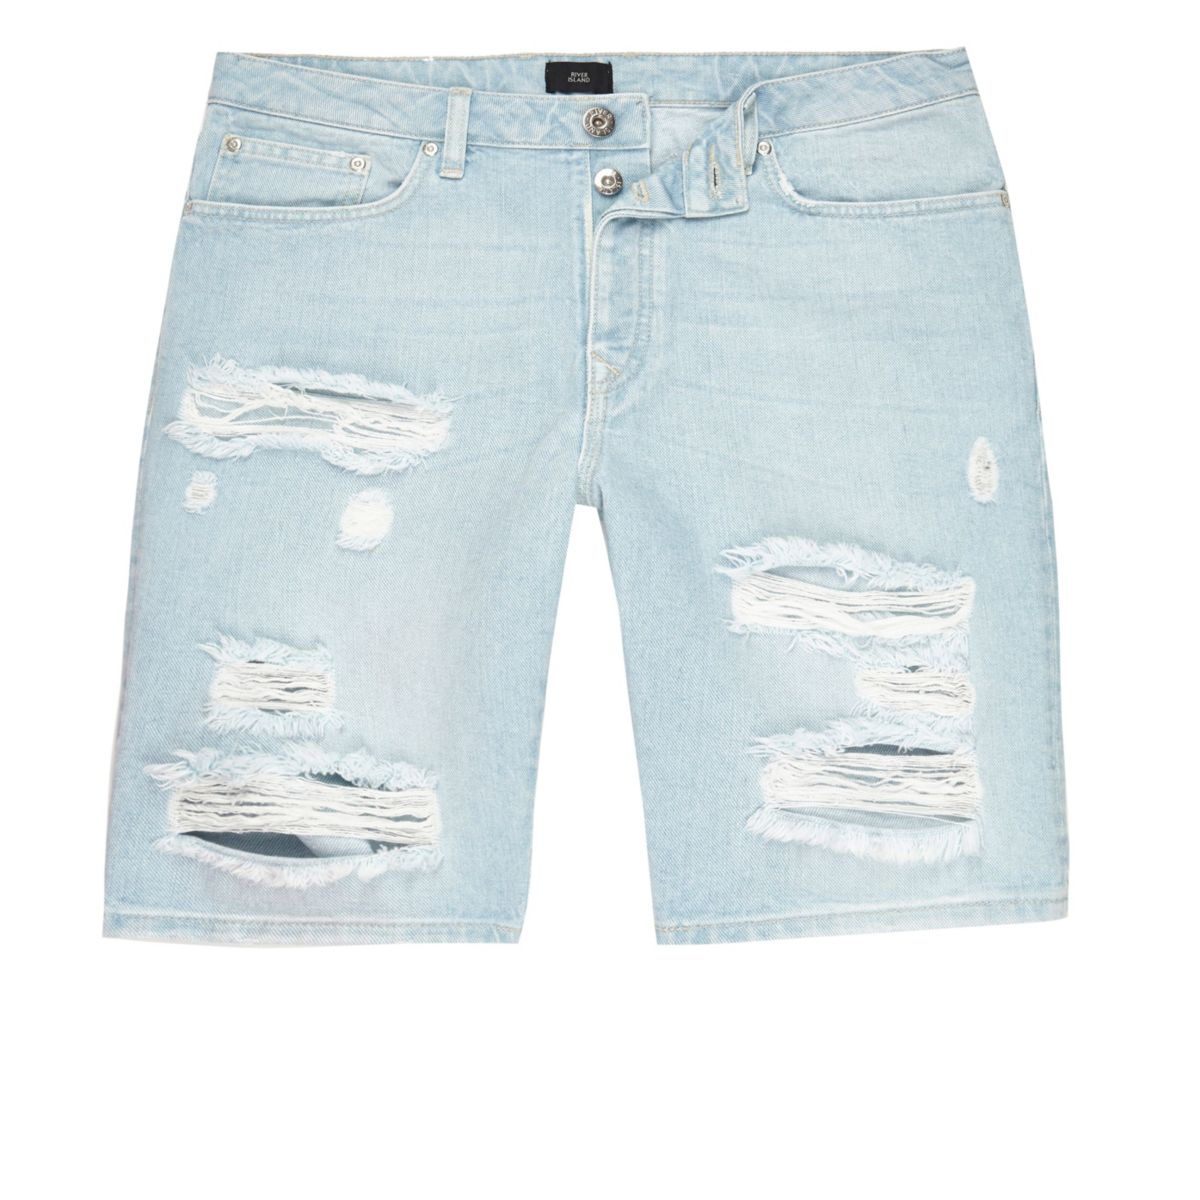 Light blue wash ripped slim fit denim shorts